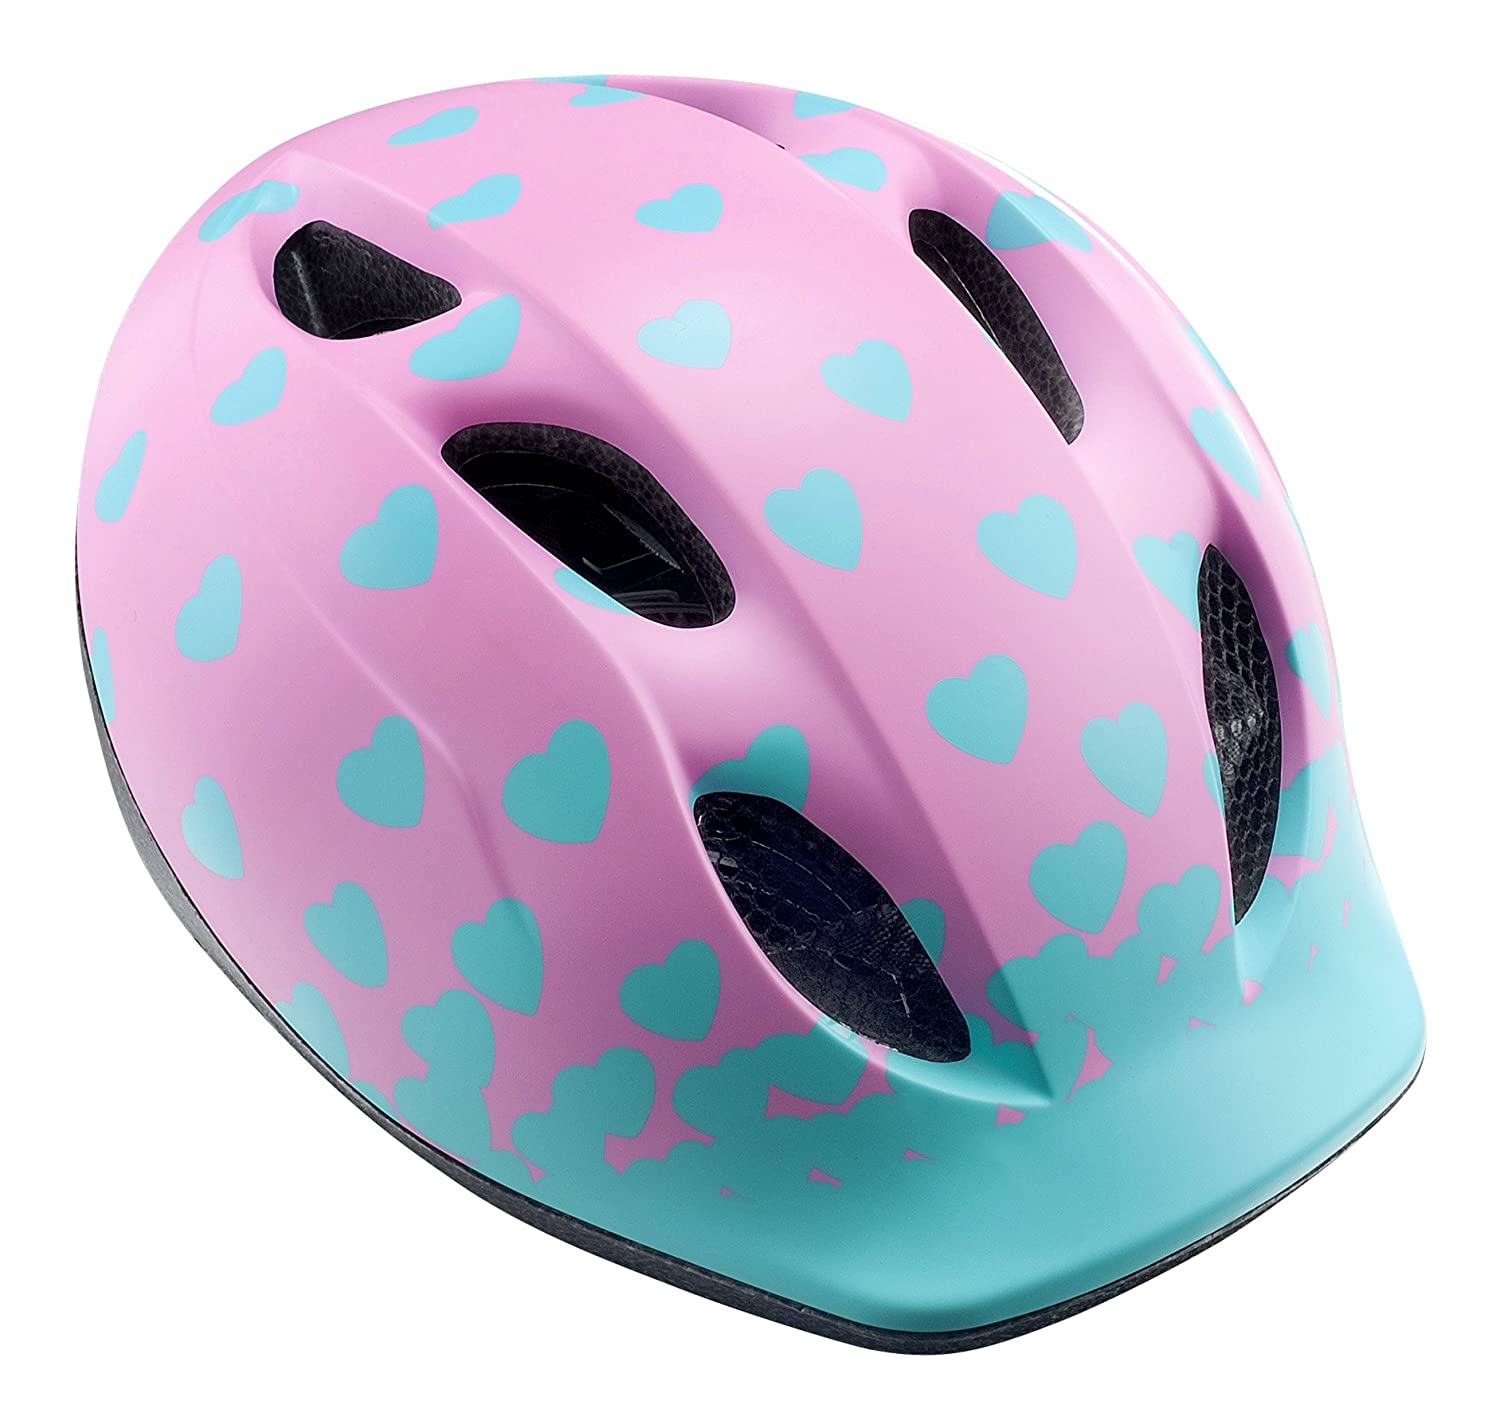 MET Kinder Fahrradhelm Super Buddy Cyan Pink 52 57 cm 3HELM19M0CR Amazon Sport & Freizeit